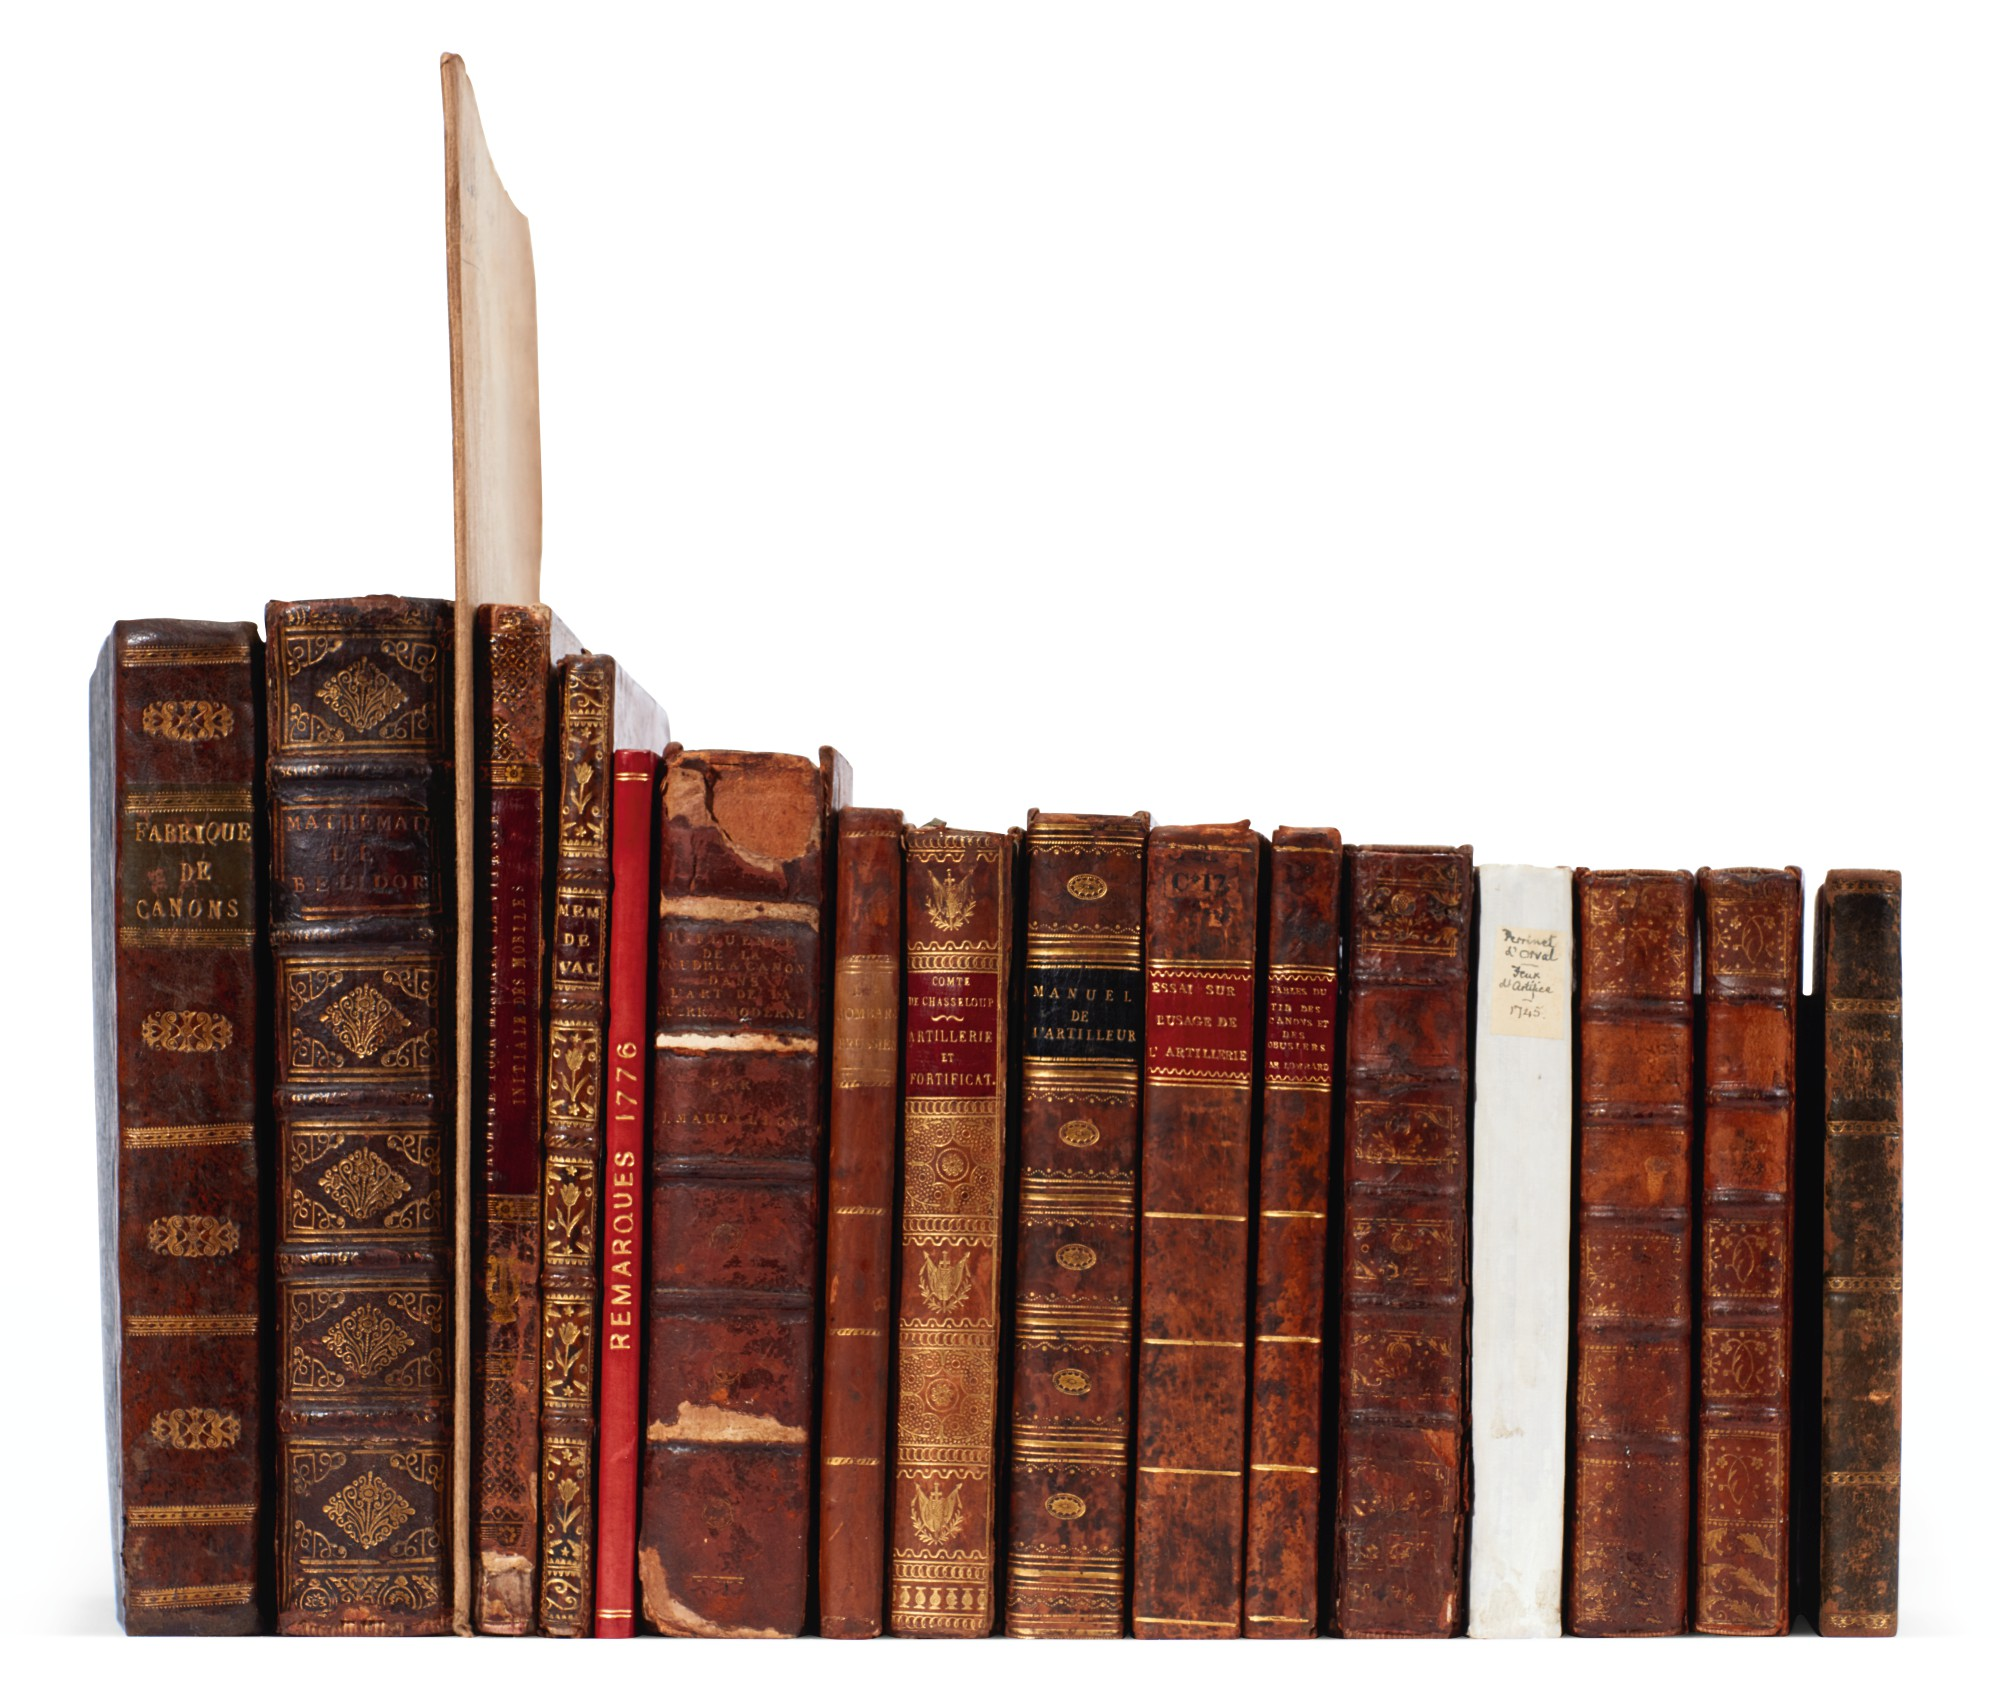 Artillery, French, 18 volumes, 18th and 19th century